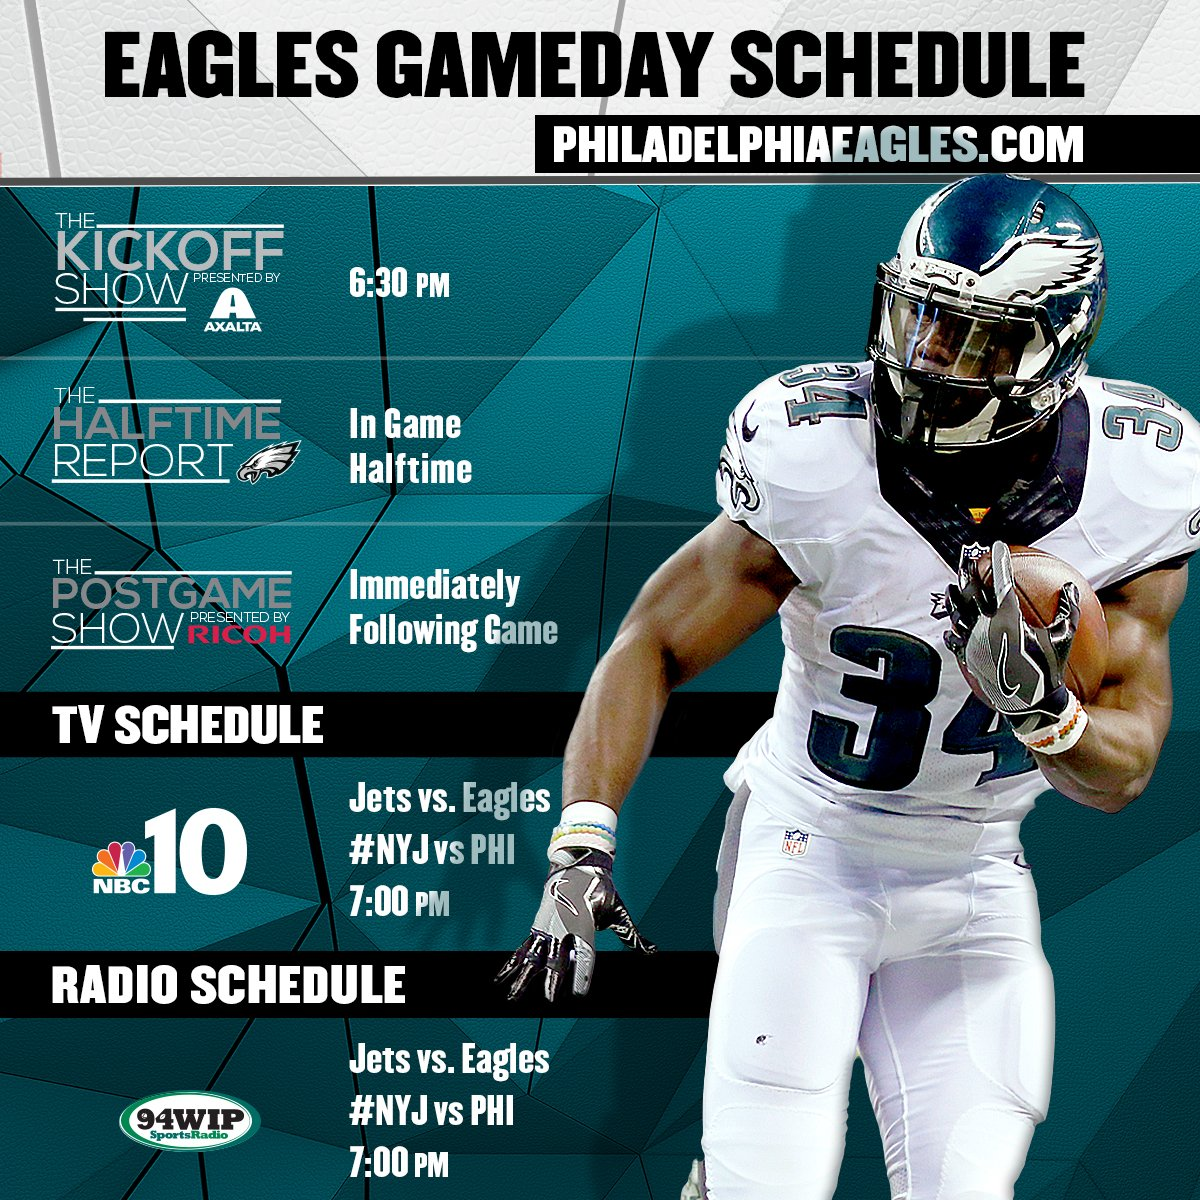 Colorado Eagles Schedule: Today's #NYJvsPHI Gameday Schedule ... Https://t.co